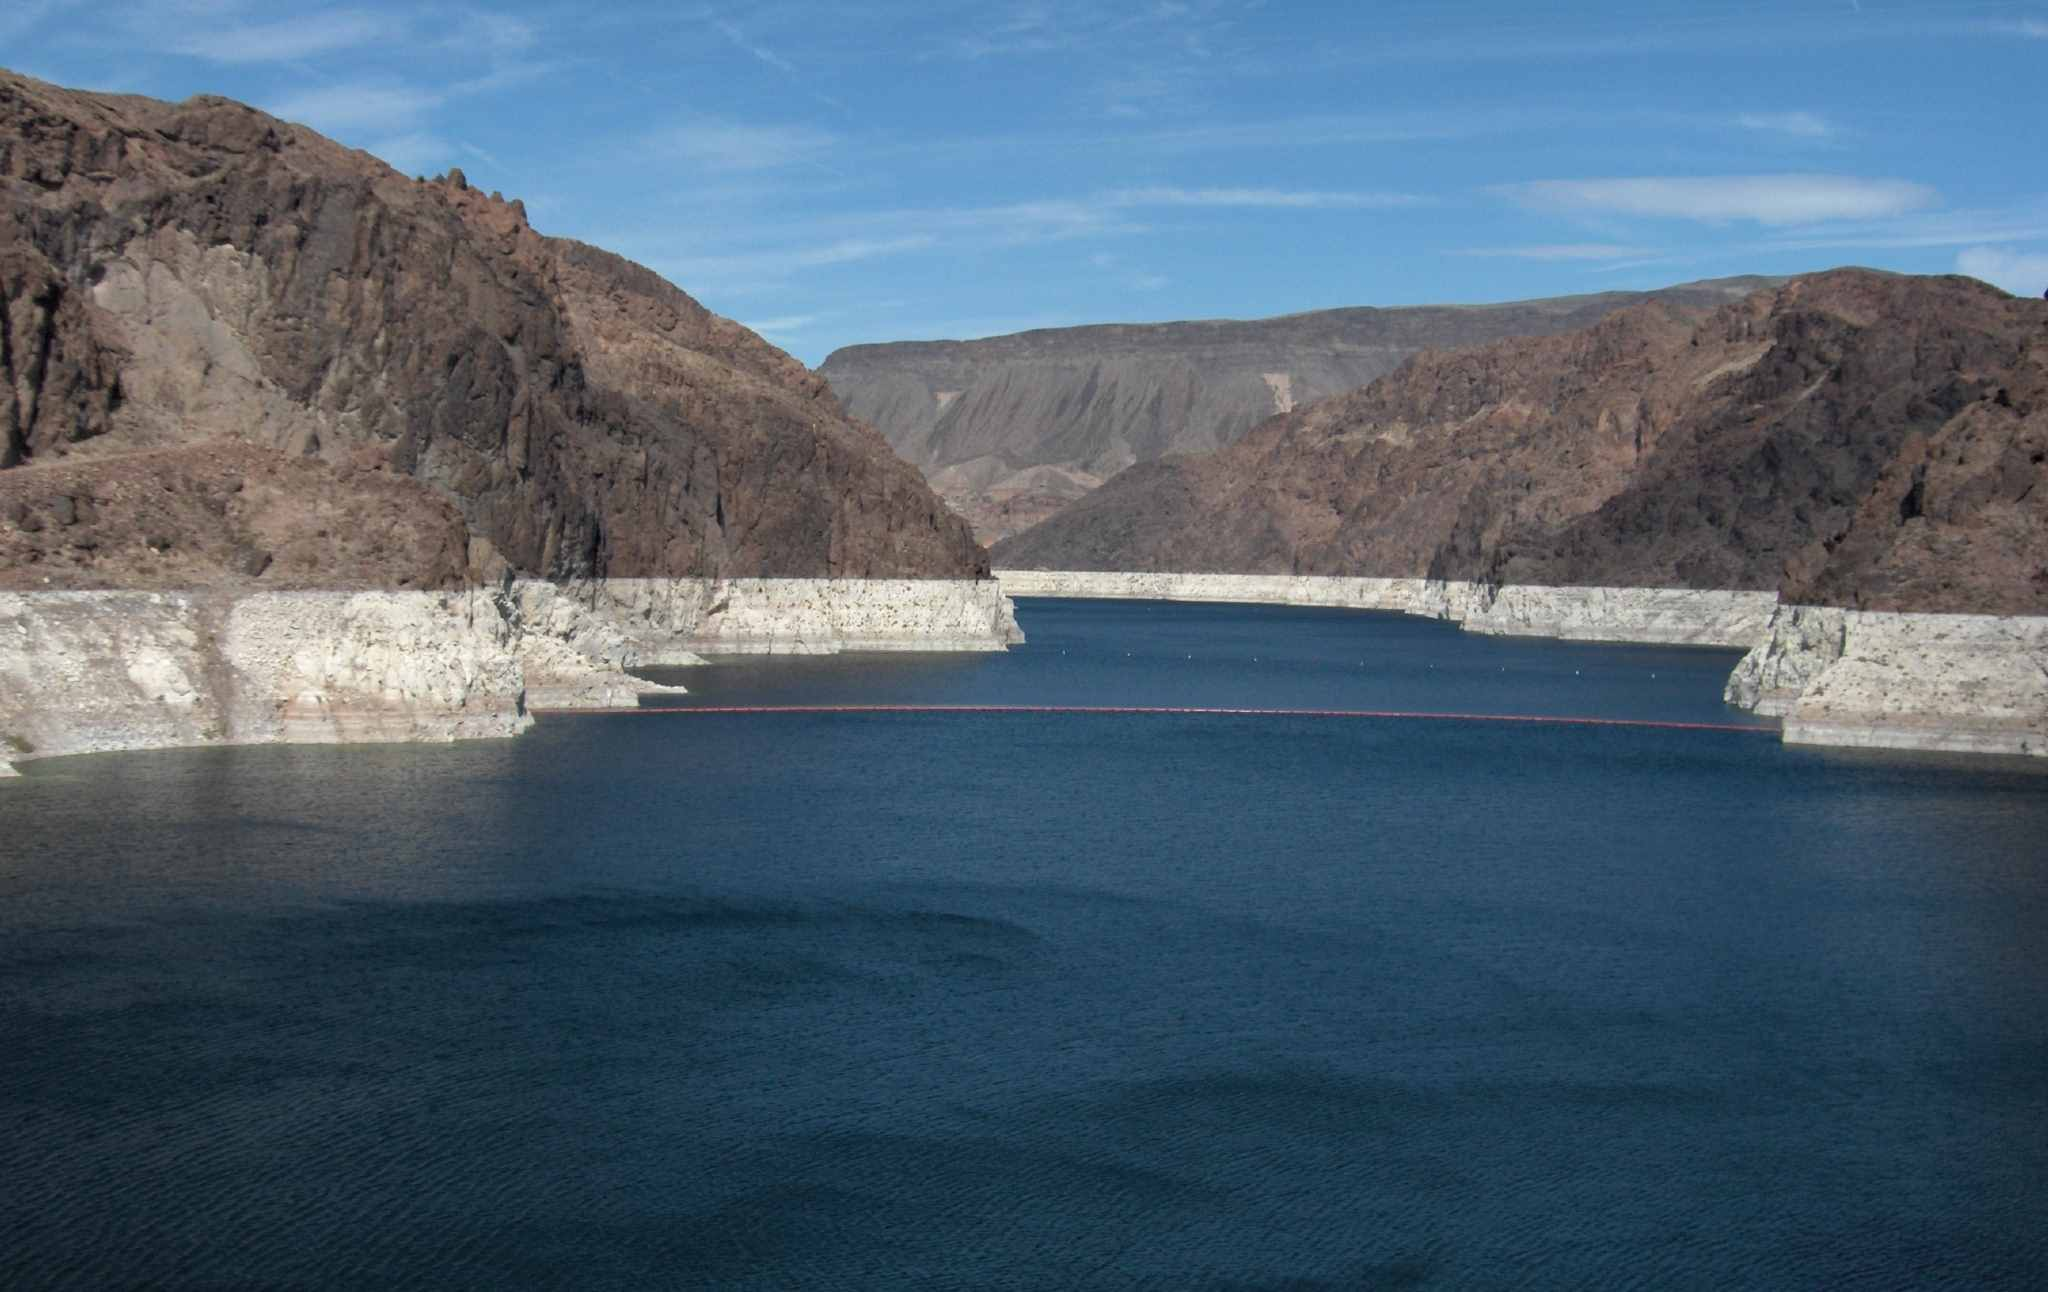 For the first time since Lake Mead and the Hoover Dam were constructed in the 1930s, the federal government has declared a water shortage. Arizona will be hardest hit.